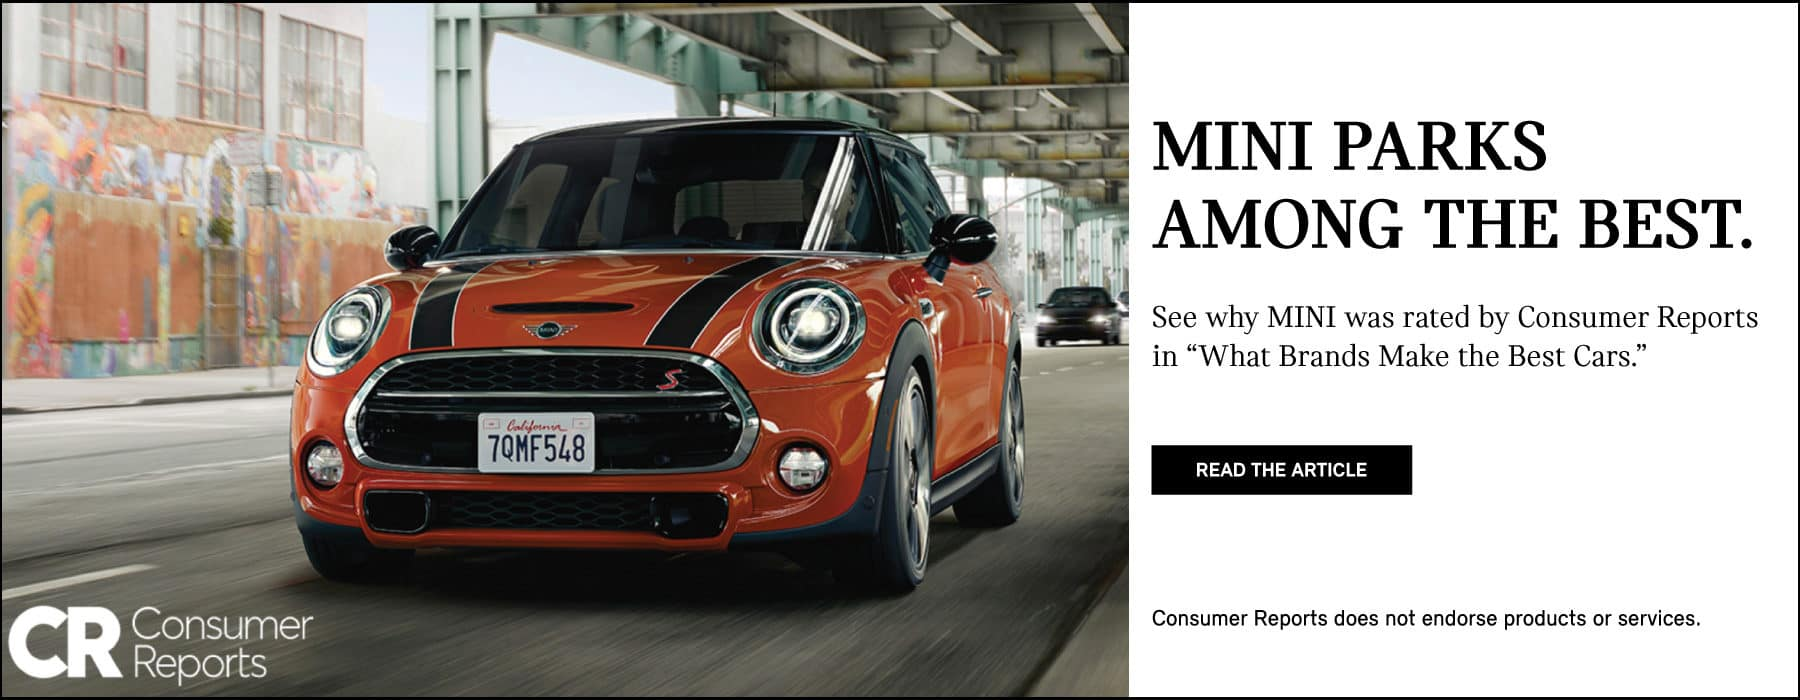 MINI parks among the best. Consumers Report. MINI Cooper S Hardtop 2 Door. Read the Article.